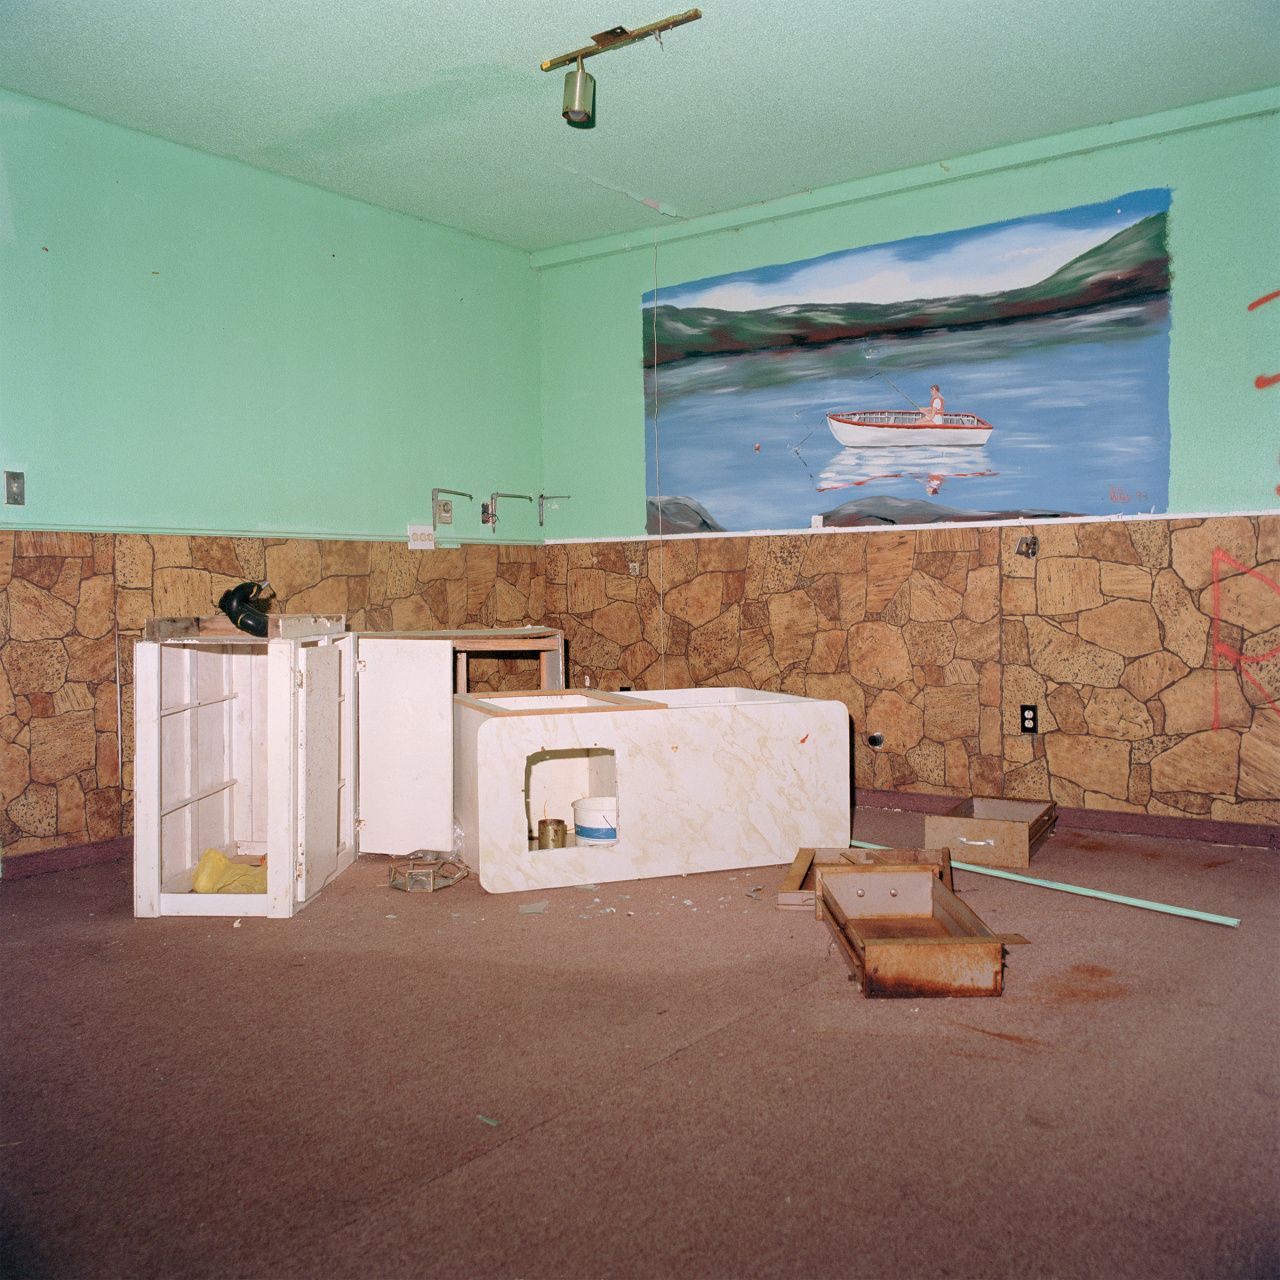 Ethan Murphy, Abandoned Room, from the series WheretheLightShinesFirst, 2017. Courtesyoftheartist